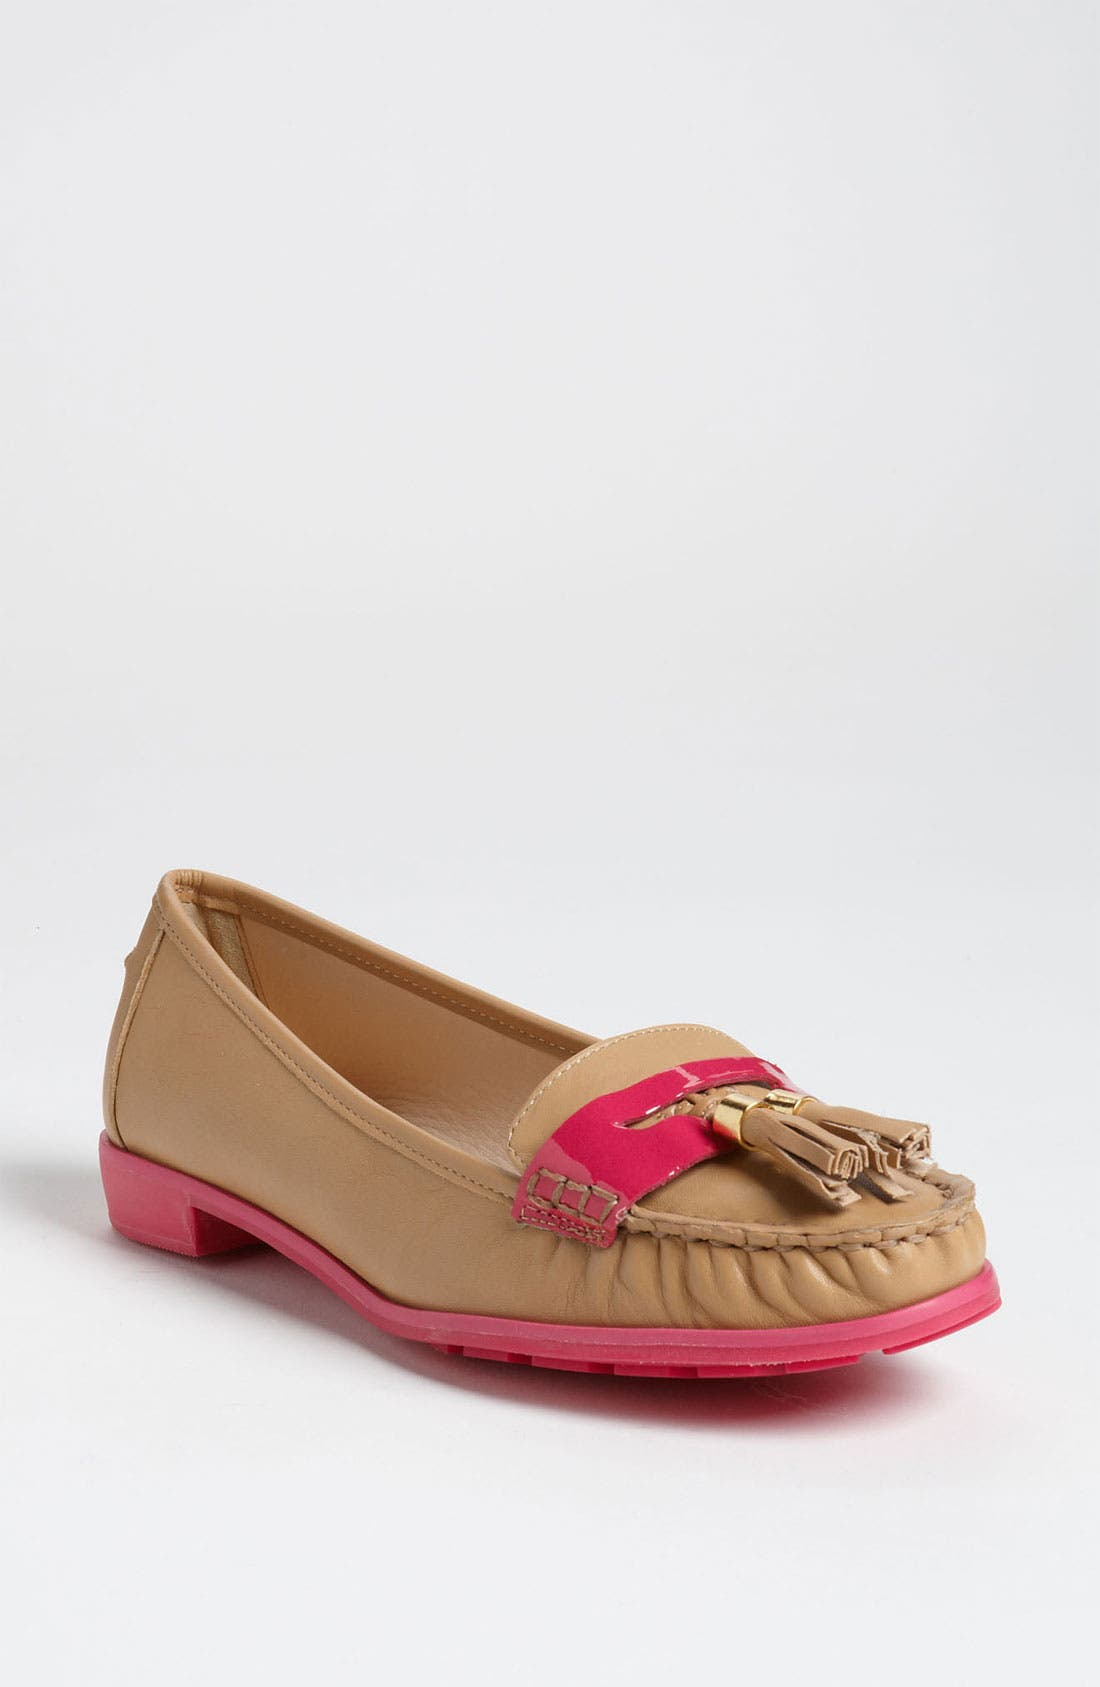 Alternate Image 1 Selected - kate spade new york 'cabara' loafer